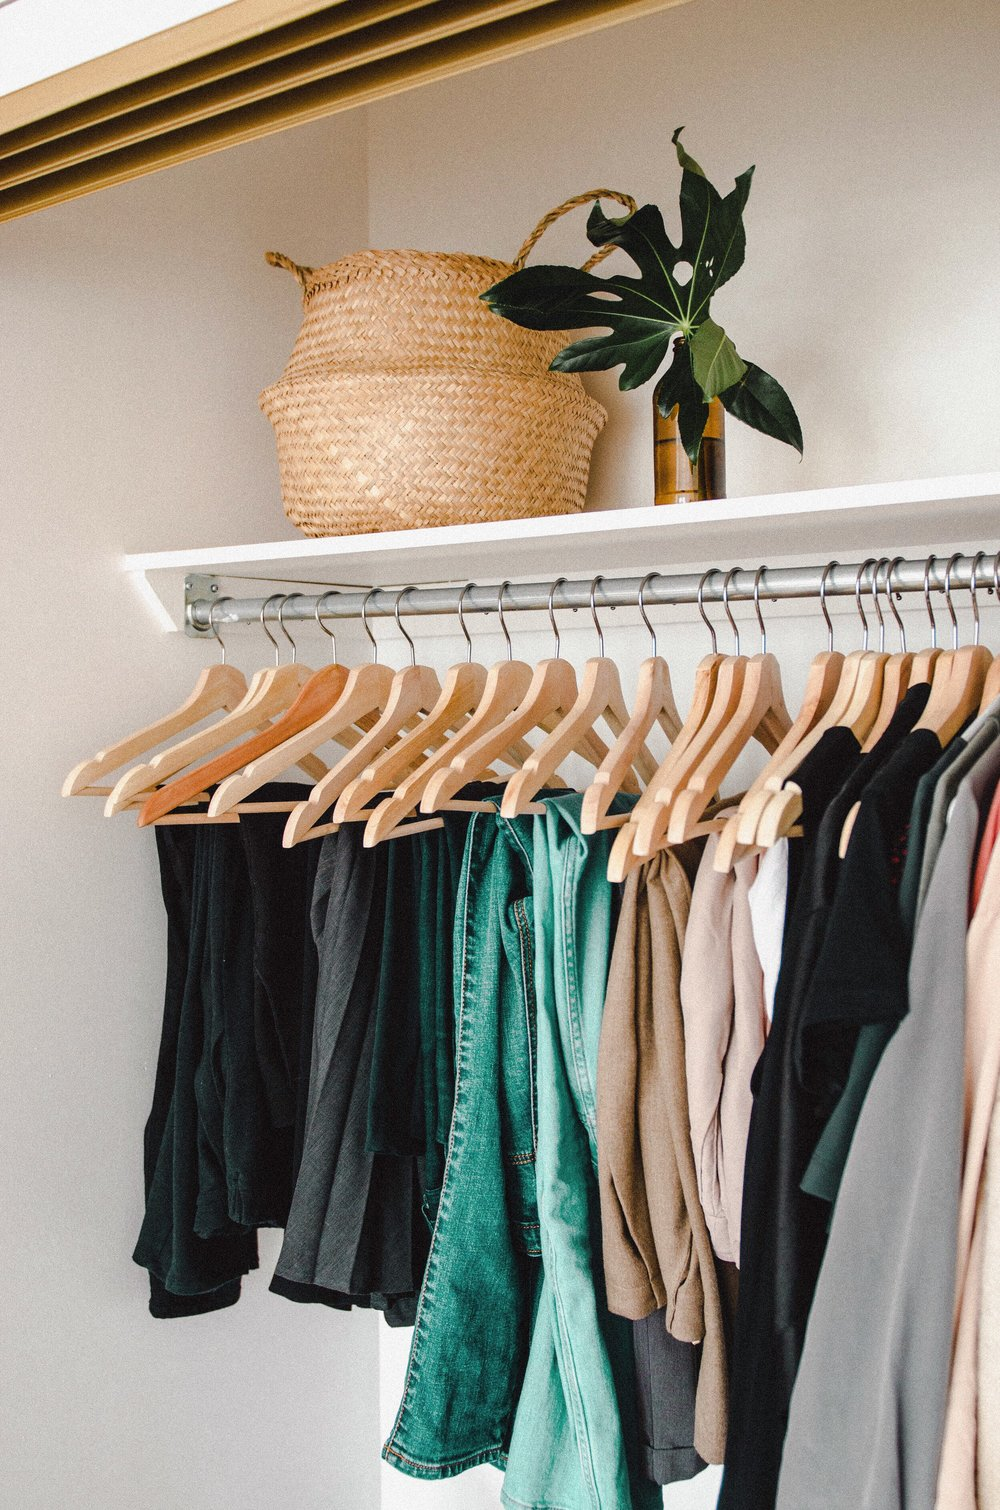 """""""Because life is more than clothes. Because I hope people know me, and remember me, for more than my clothes. Because I am dressed, so I can go focus on what matters. Because the secret to curating a perfect wardrobe is realizing that I already have one. """" Check out more of  Aléna's open letter to her closet ."""